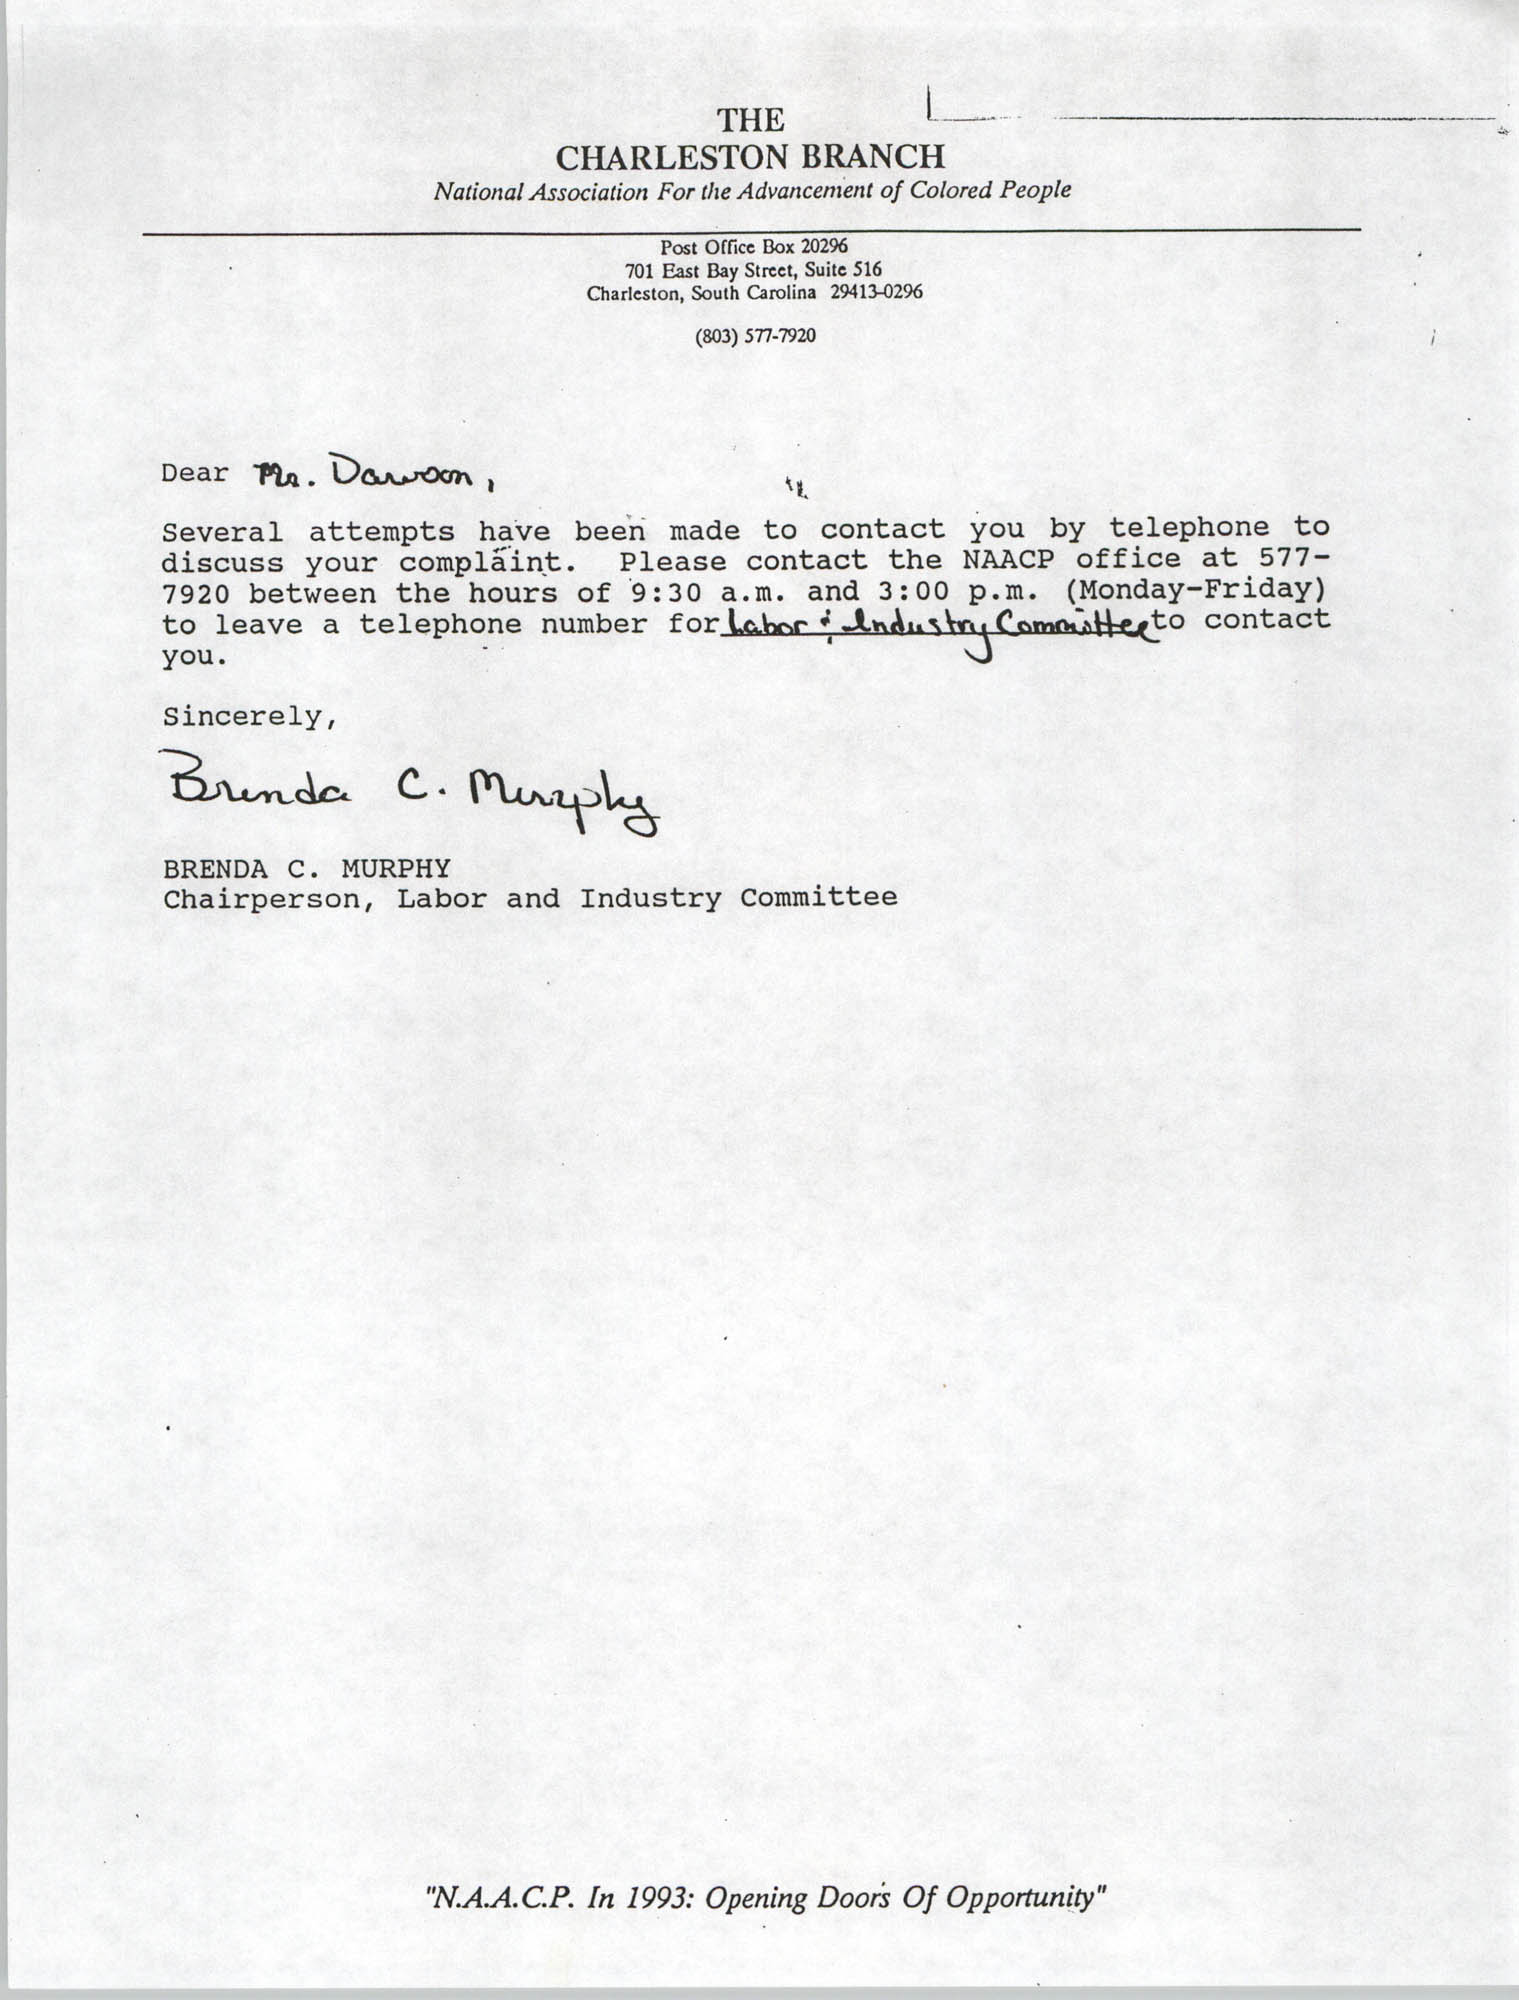 Letter from Brenda C. Murphy to Mr. Dawson